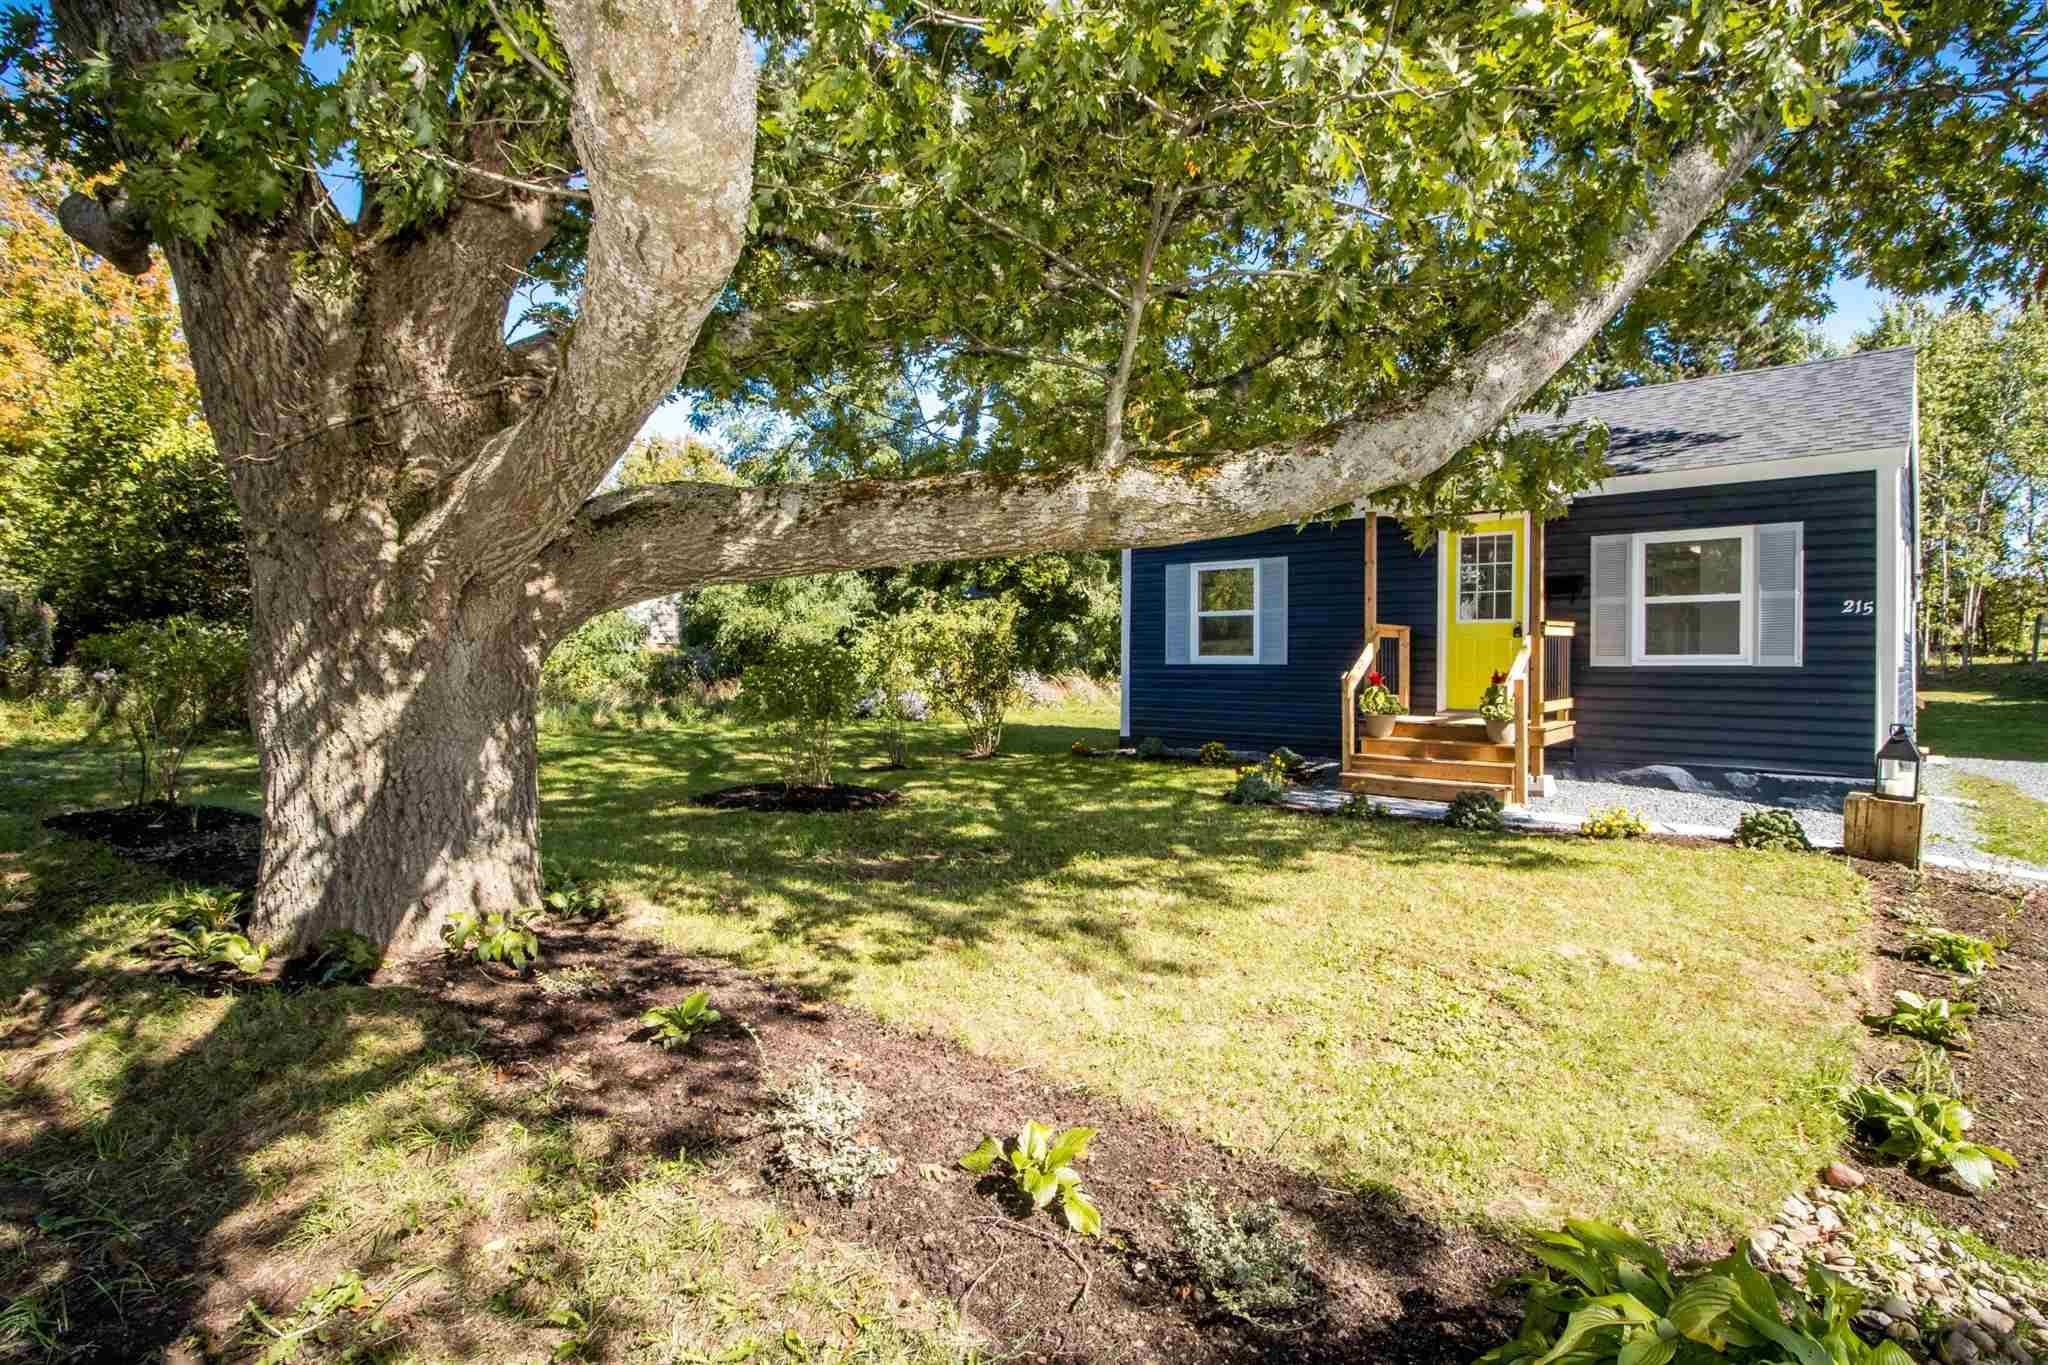 Main Photo: 215 Oakdene Avenue in North Kentville: 404-Kings County Residential for sale (Annapolis Valley)  : MLS®# 202124740